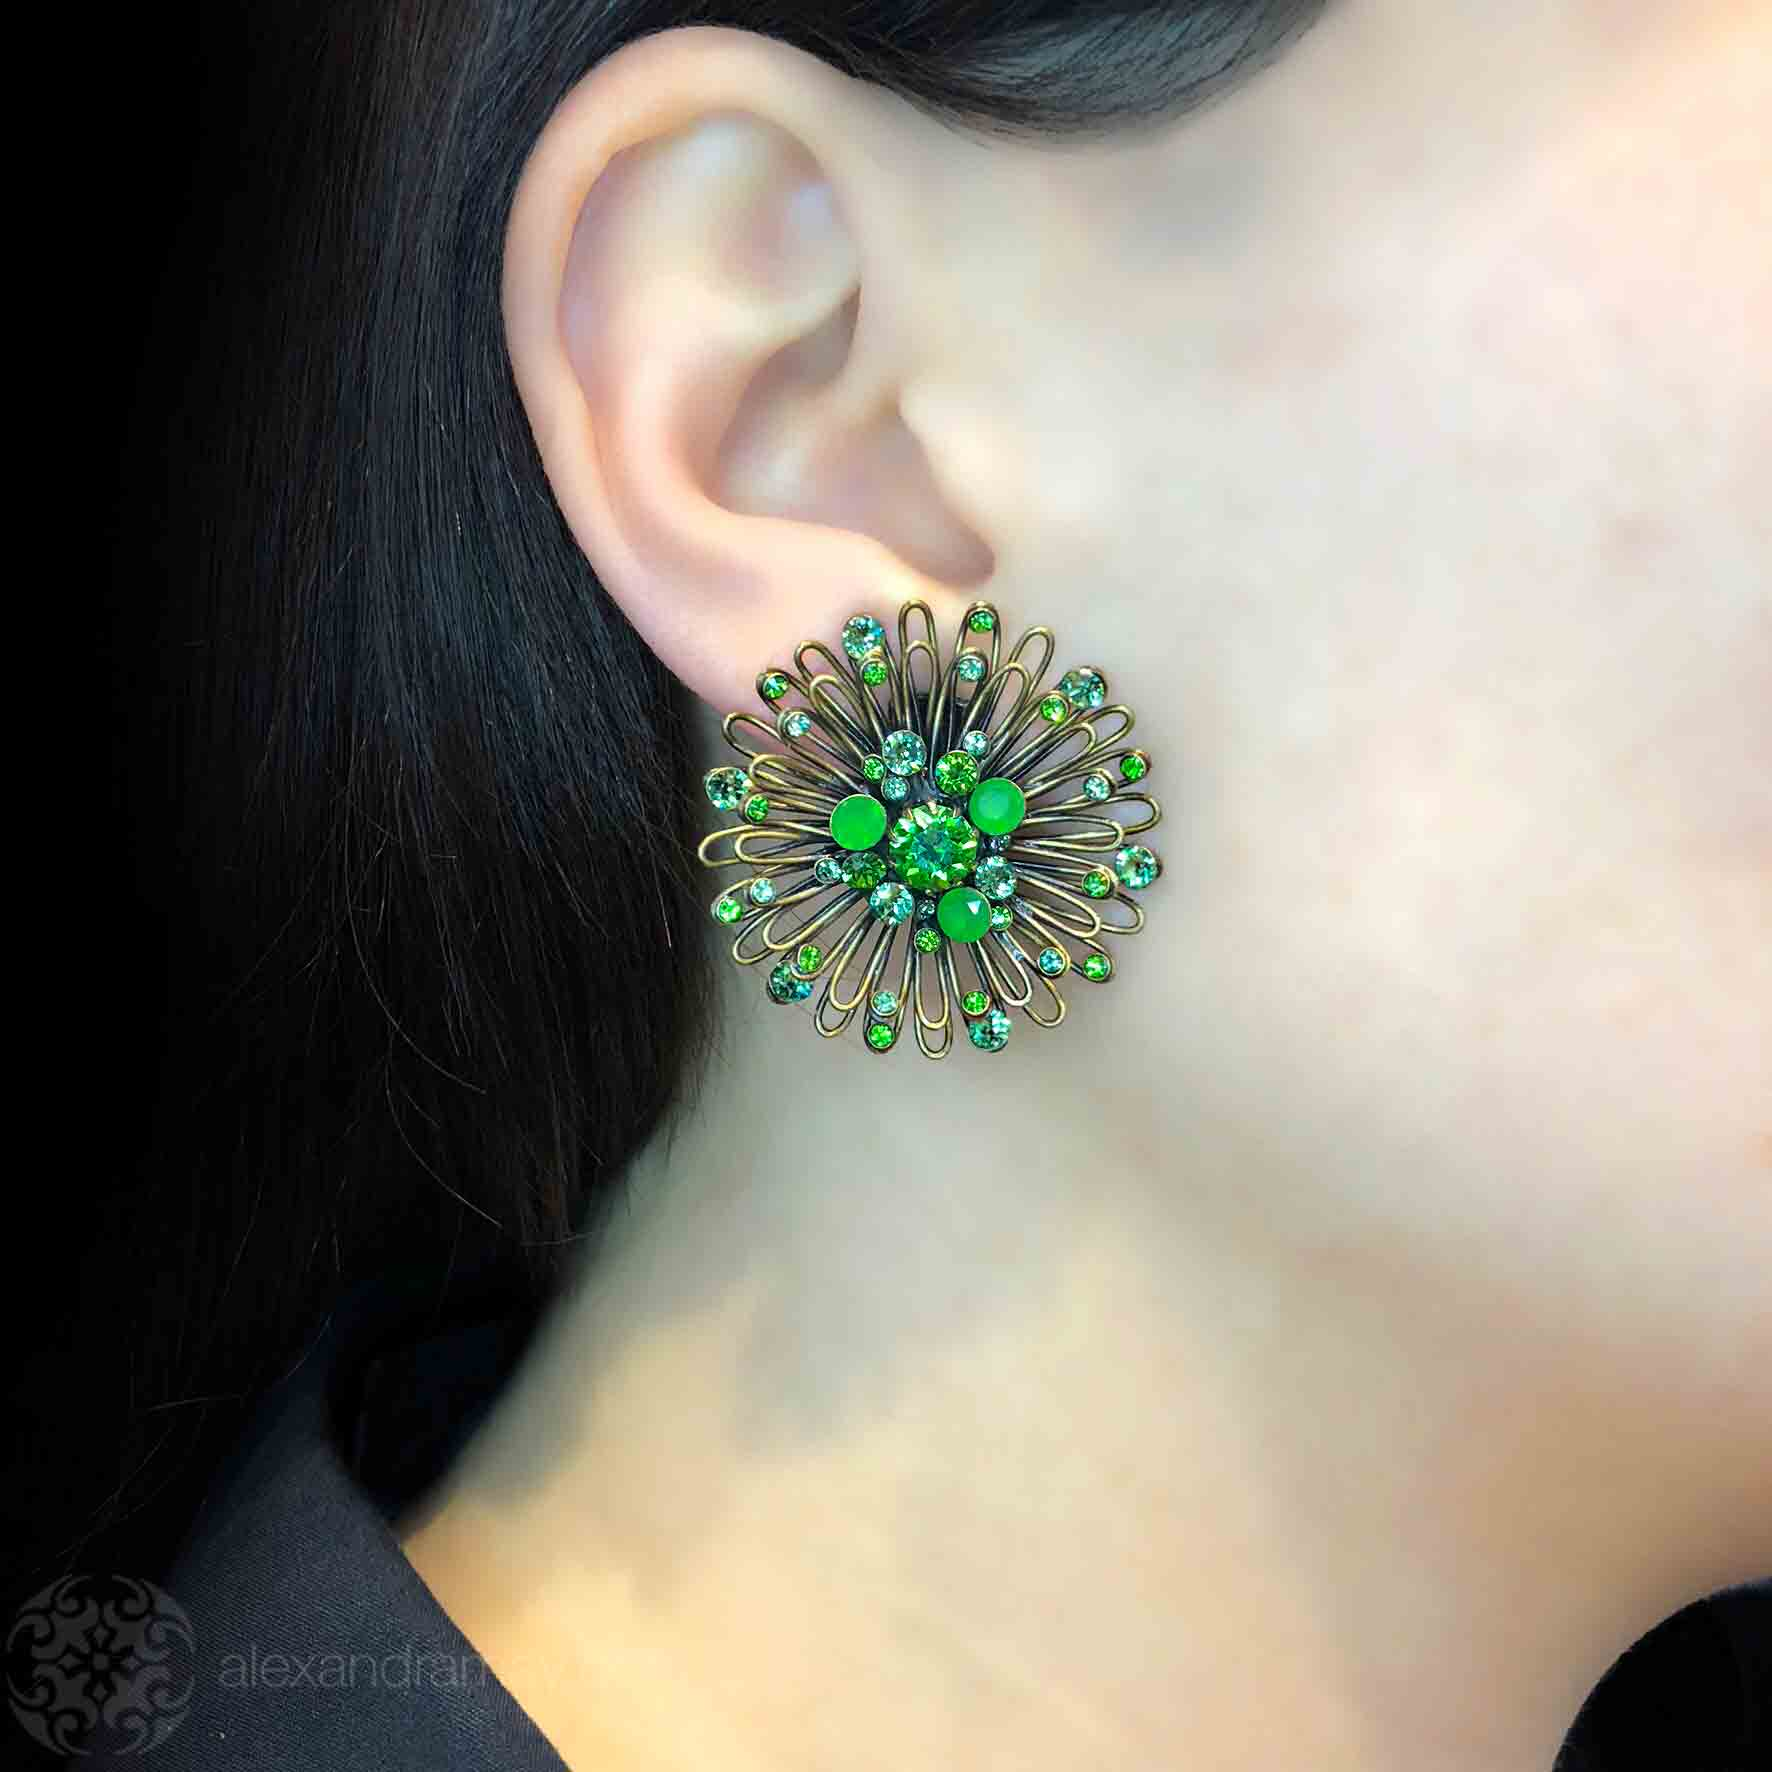 Konplott 'Distel' Green Swarovski Stud Pierced Earrings (633497)